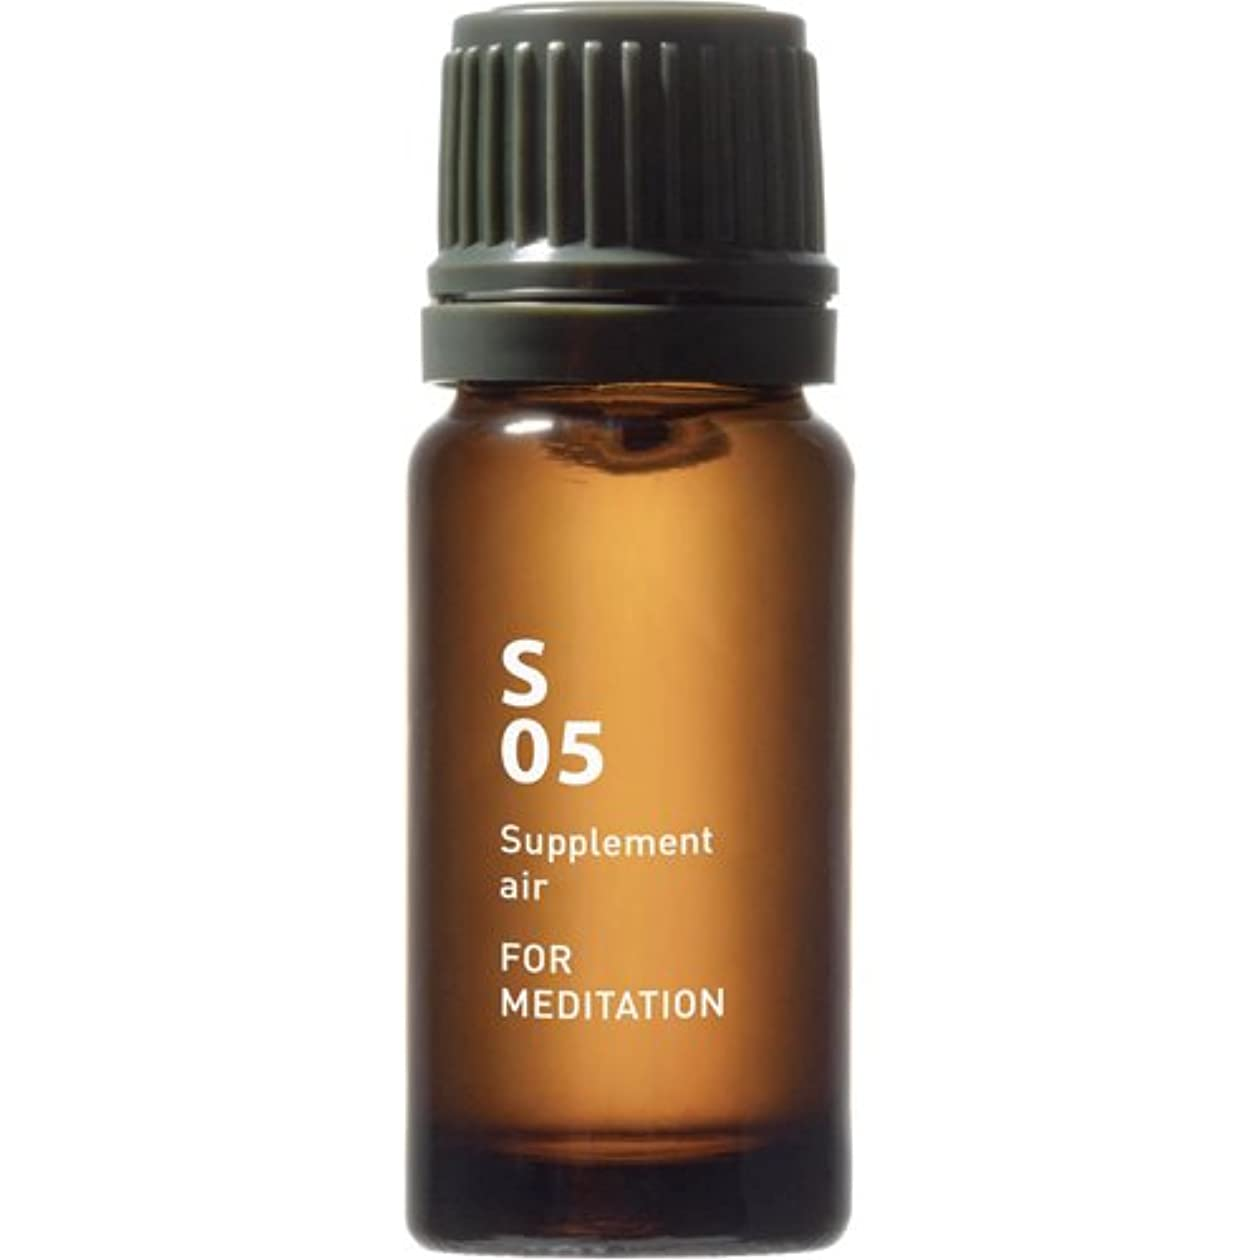 喉が渇いた本部怒るS05 FOR MEDITATION Supplement air 10ml